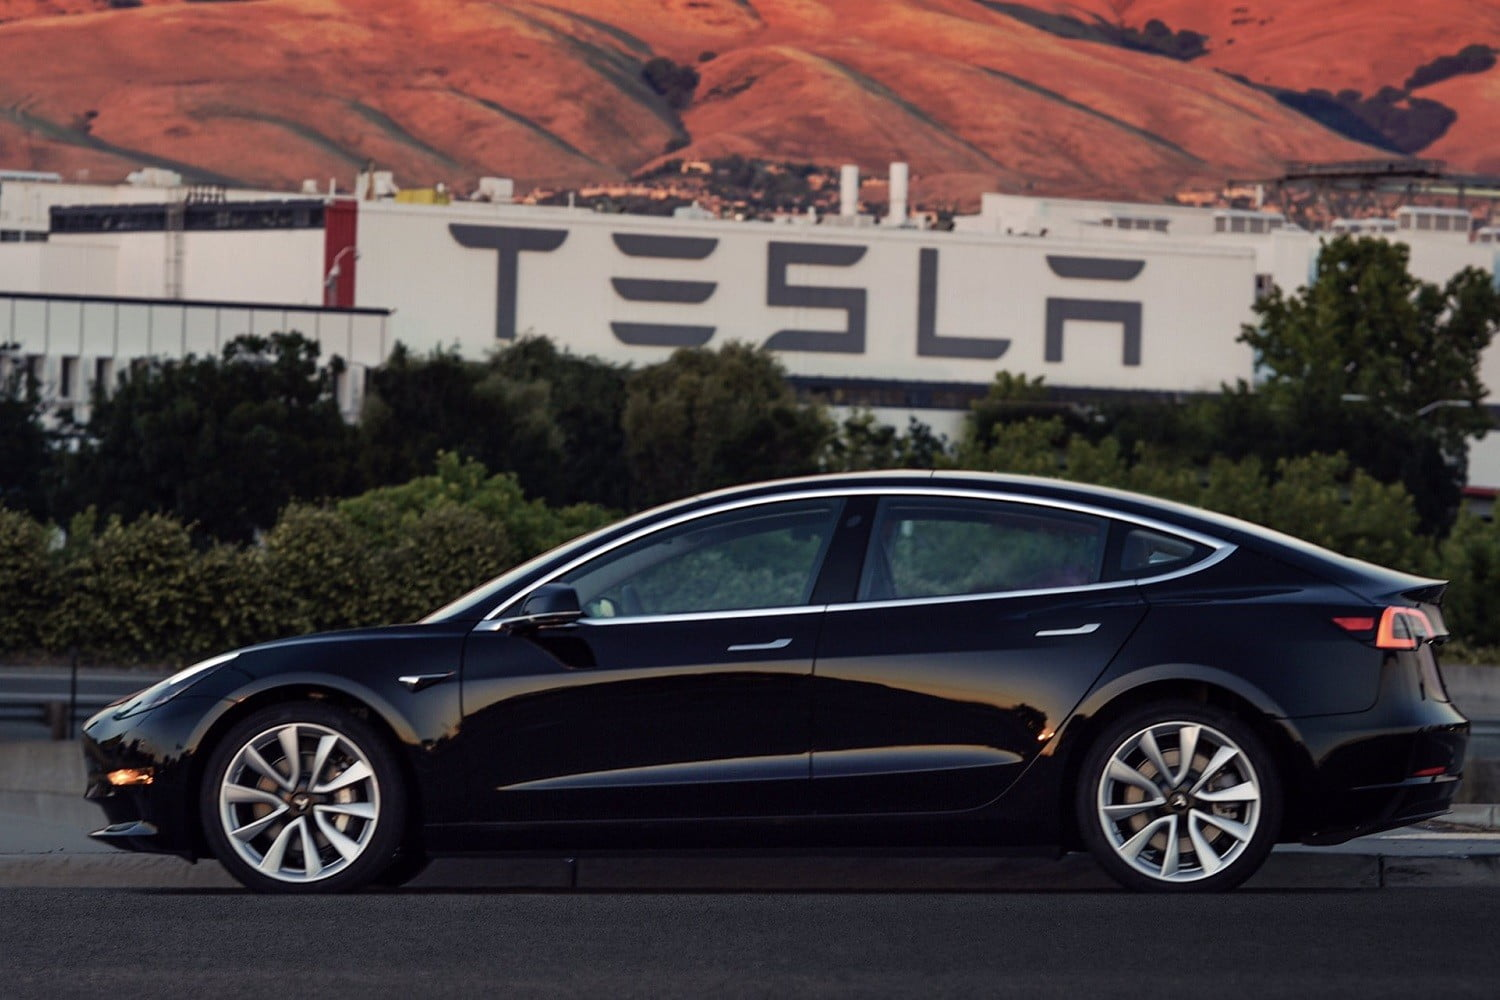 Tesla Model 3 Price Cut by 1100 USD